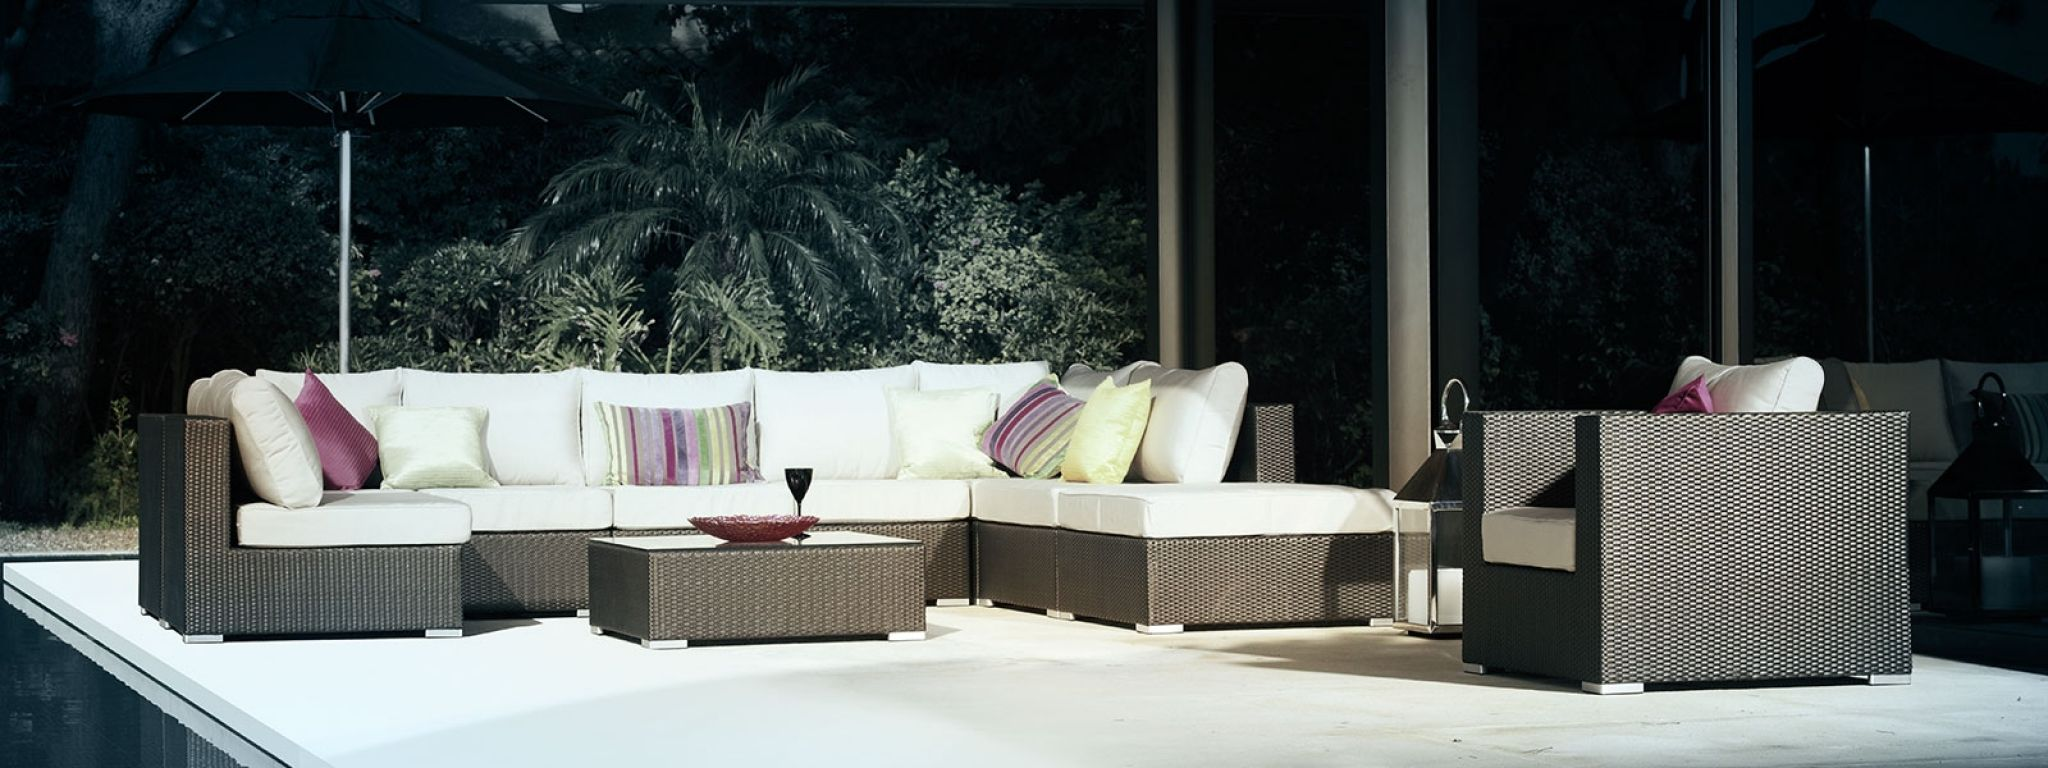 star furniture outdoor furniture lowes paint colors on lowes paint colors interior id=79738